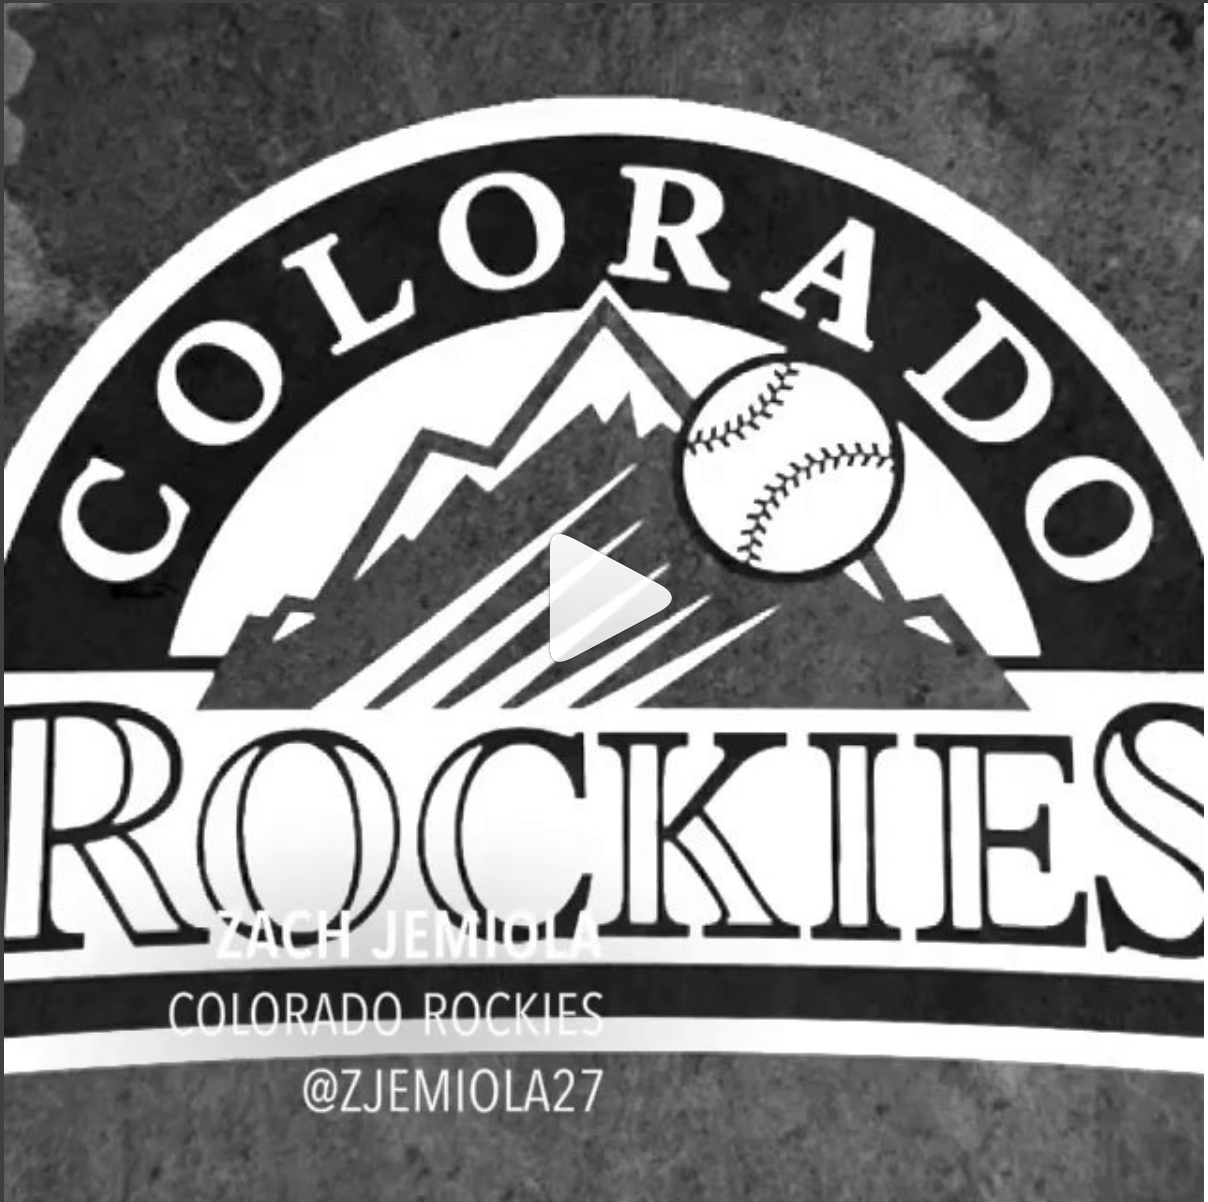 Zach Jemiola   Colorado Rockies  - @zjemiola27